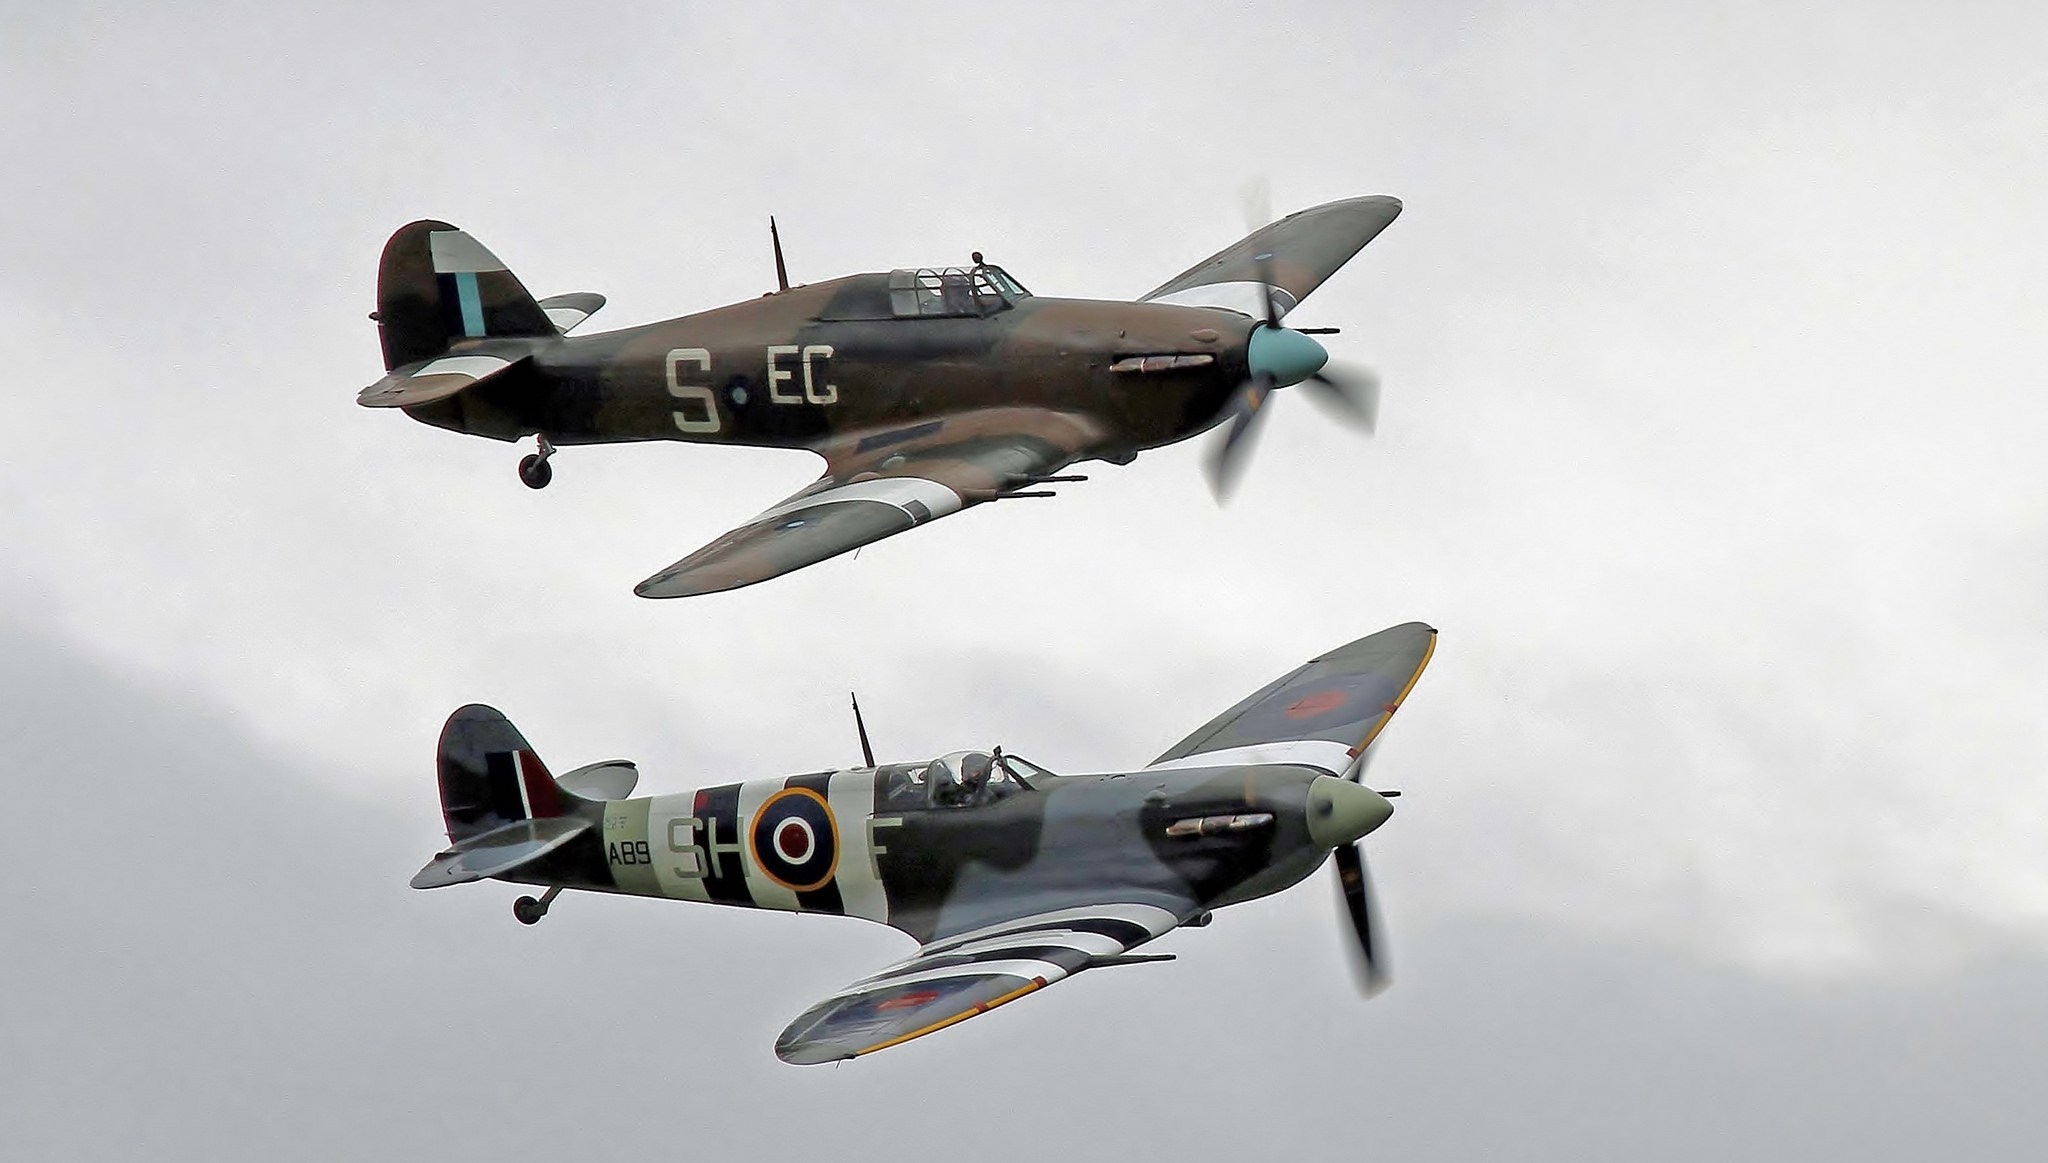 BBMF Hurricane and Spitfire pair at Scotland's National Airshow 2016 © toowoomba surfer on Flickr